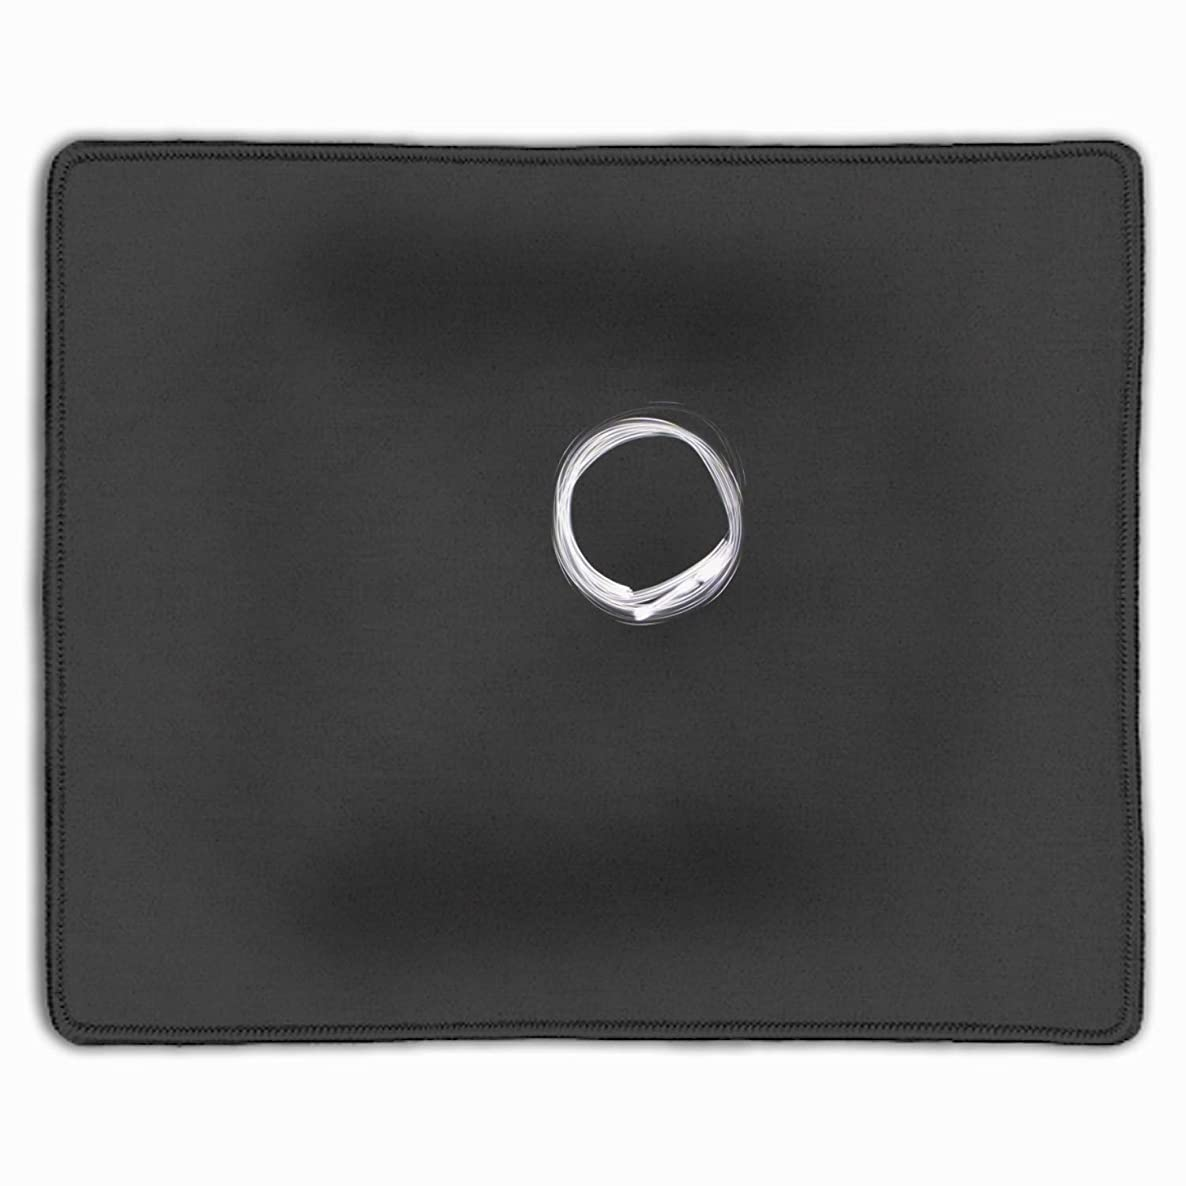 Personalized Mouse Pad - White Circle Customized Mousepad - Gaming, Office, Mousepad.